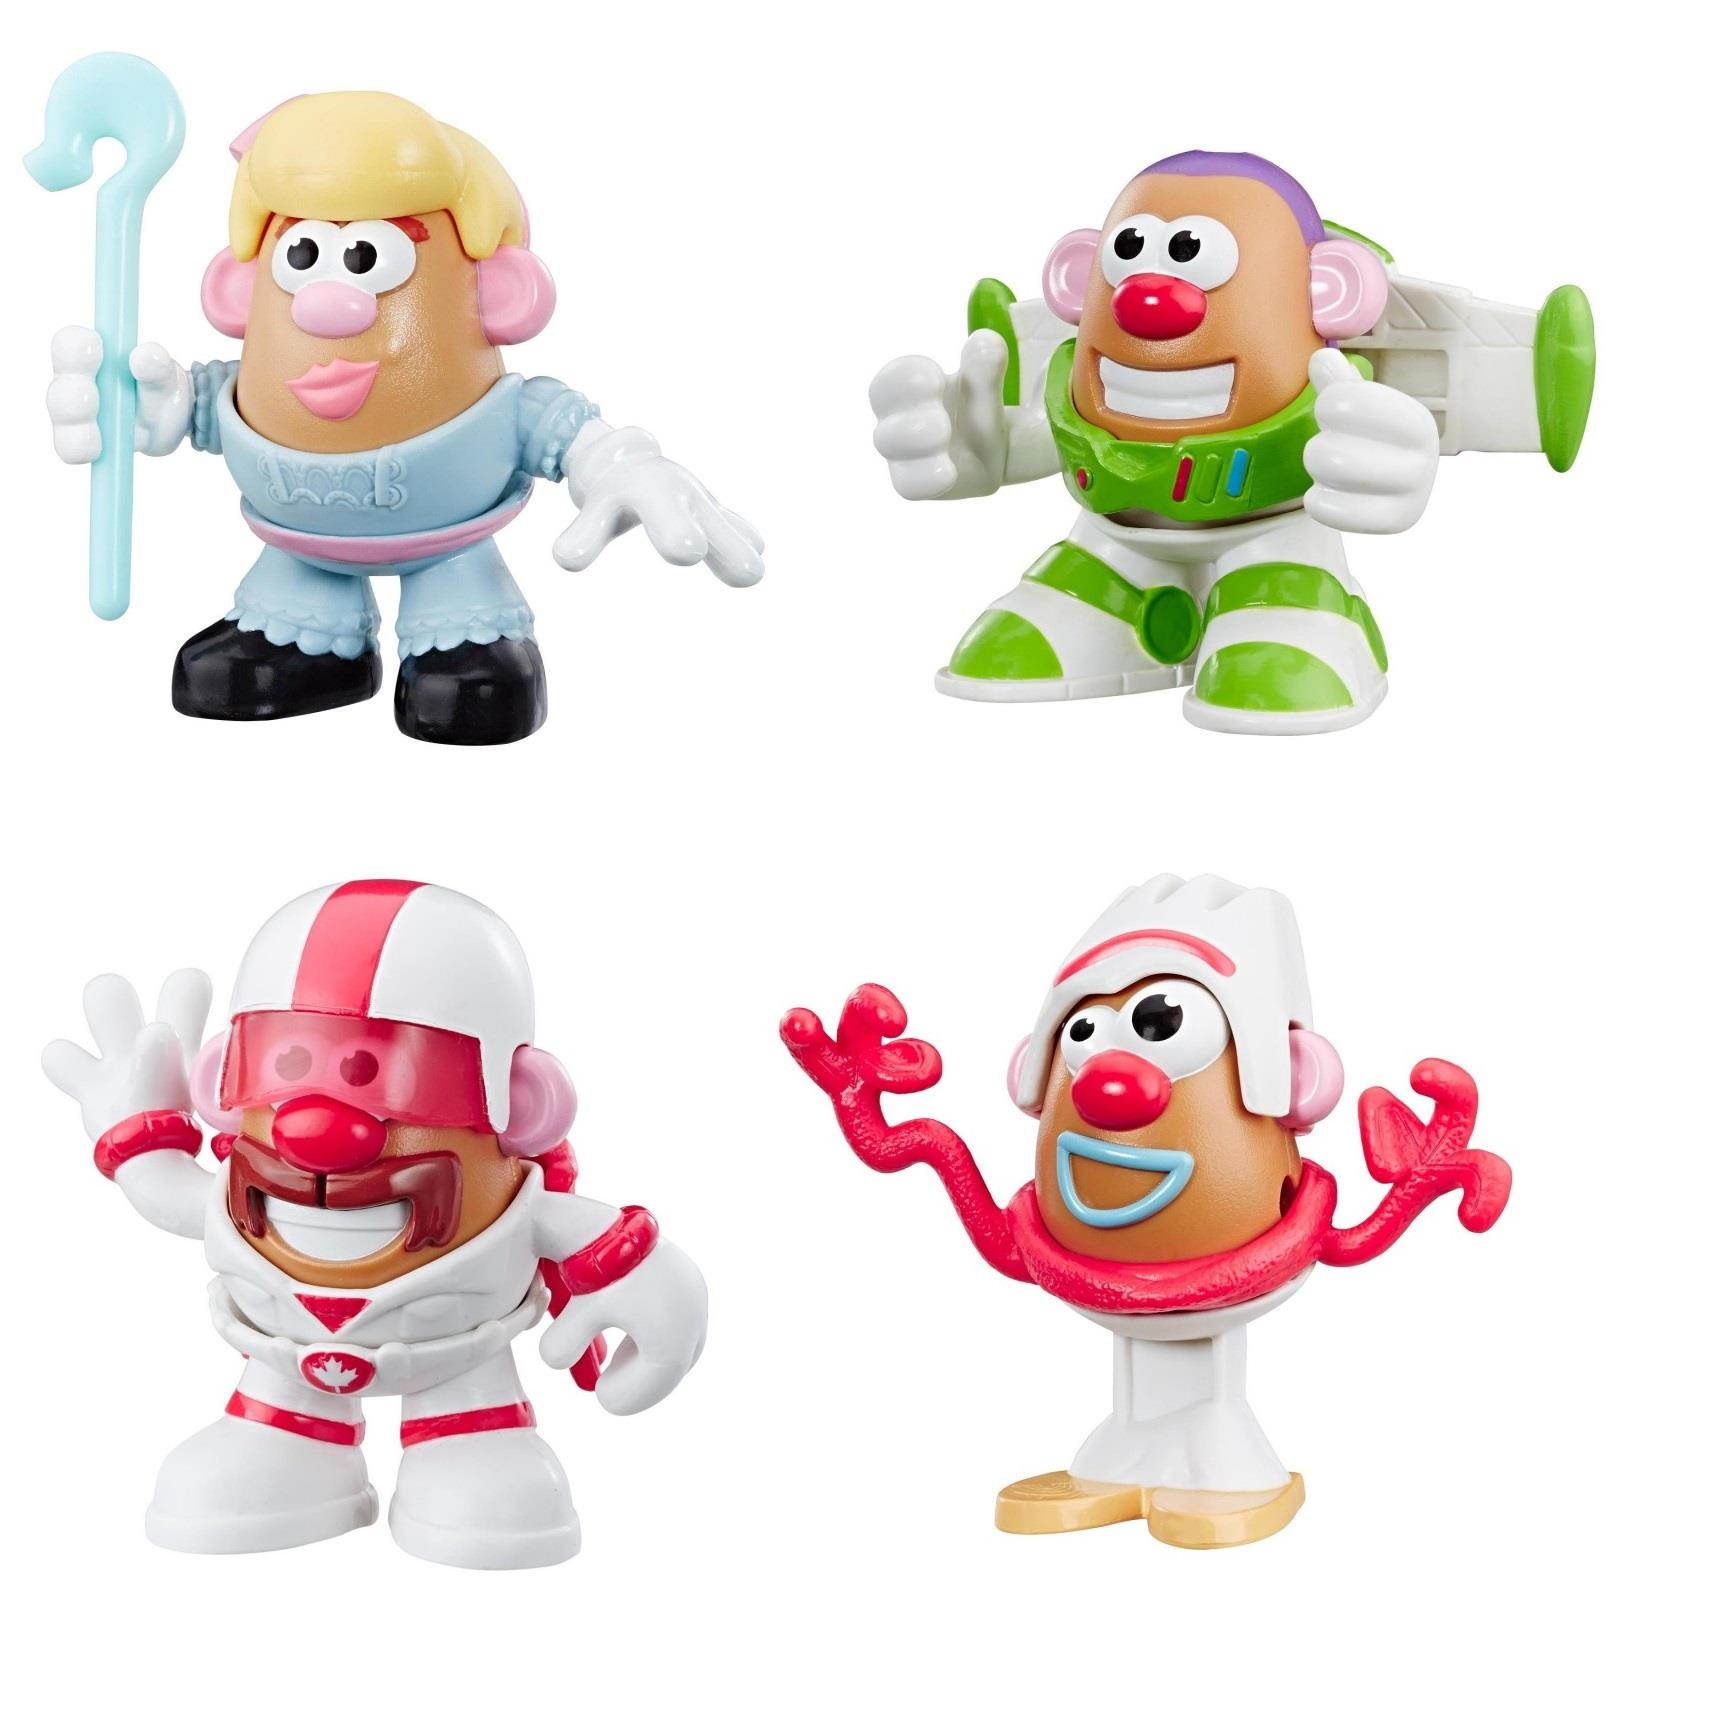 Duke Disney Pixar Toy Story 4 Mini Mr Potato Head Figure-Bo Buzz ou forky